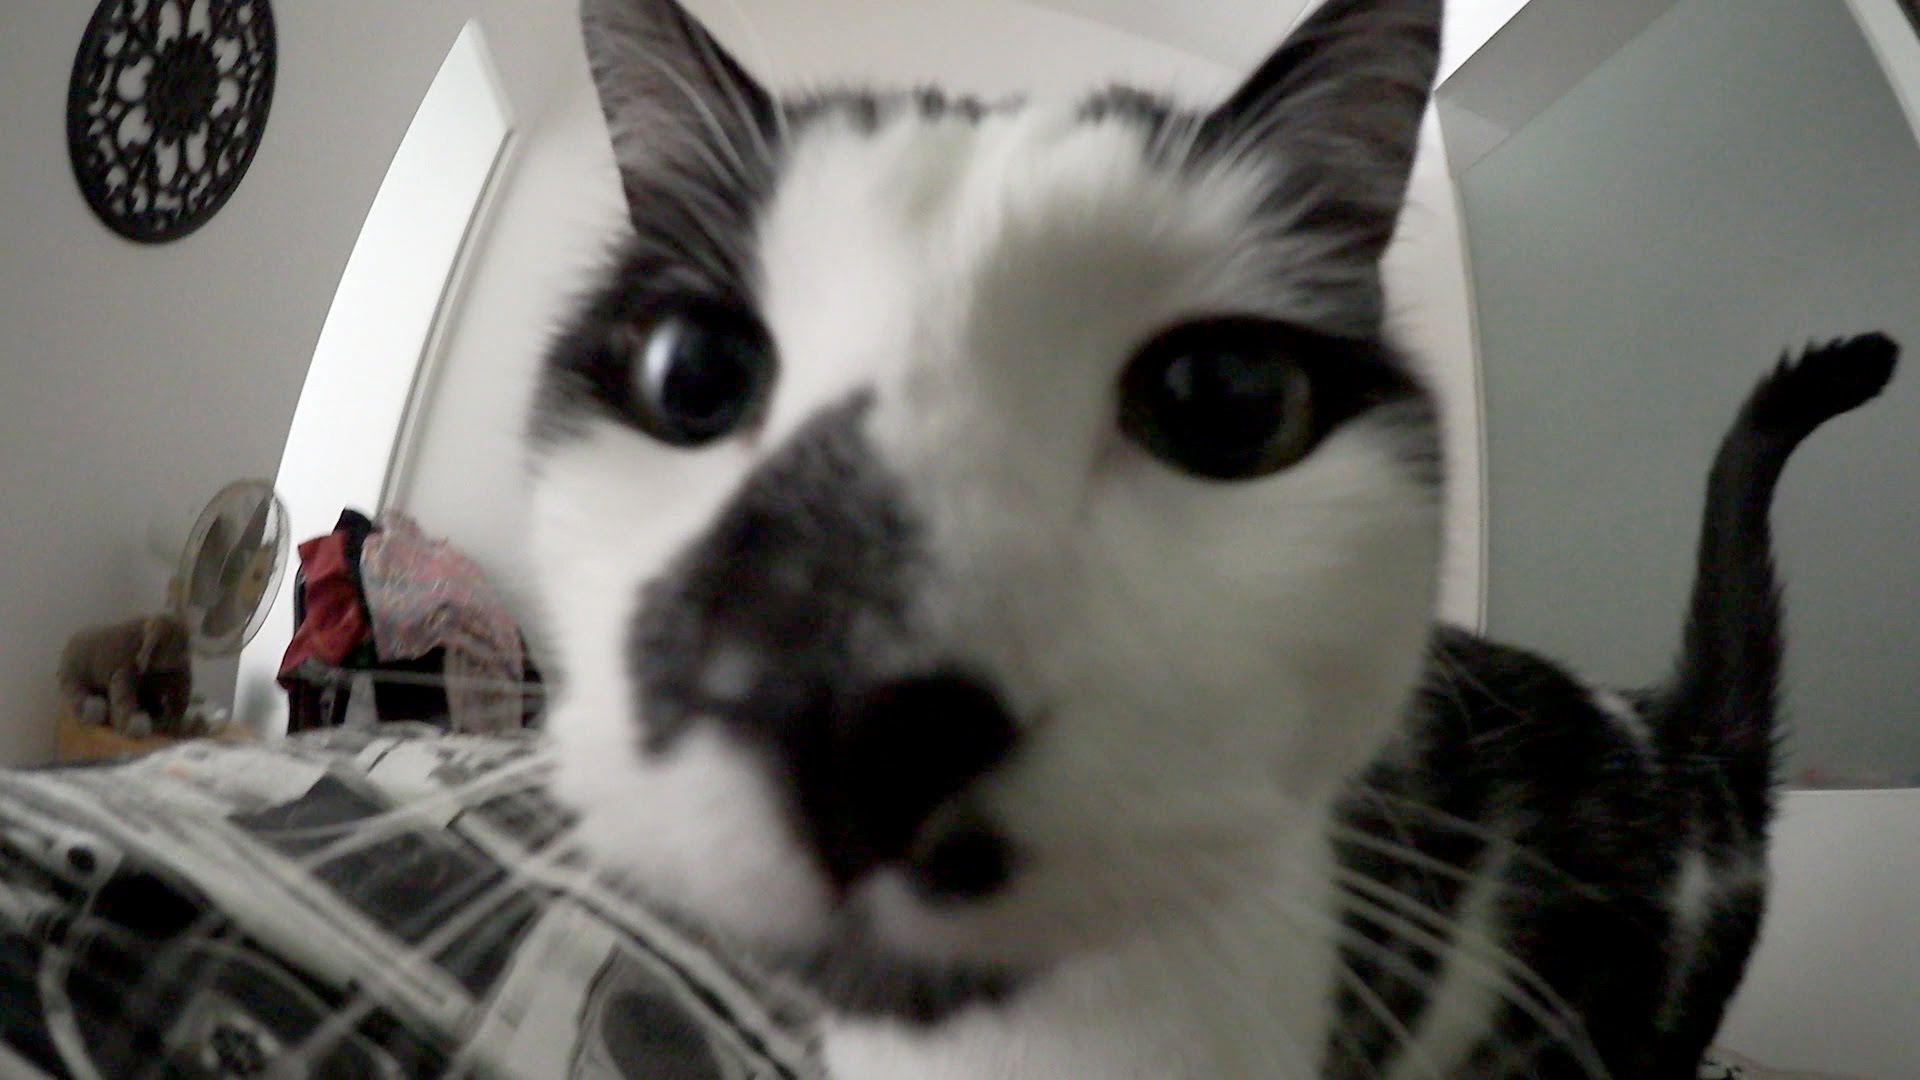 Up Close View of Being Woken Up by a Cat